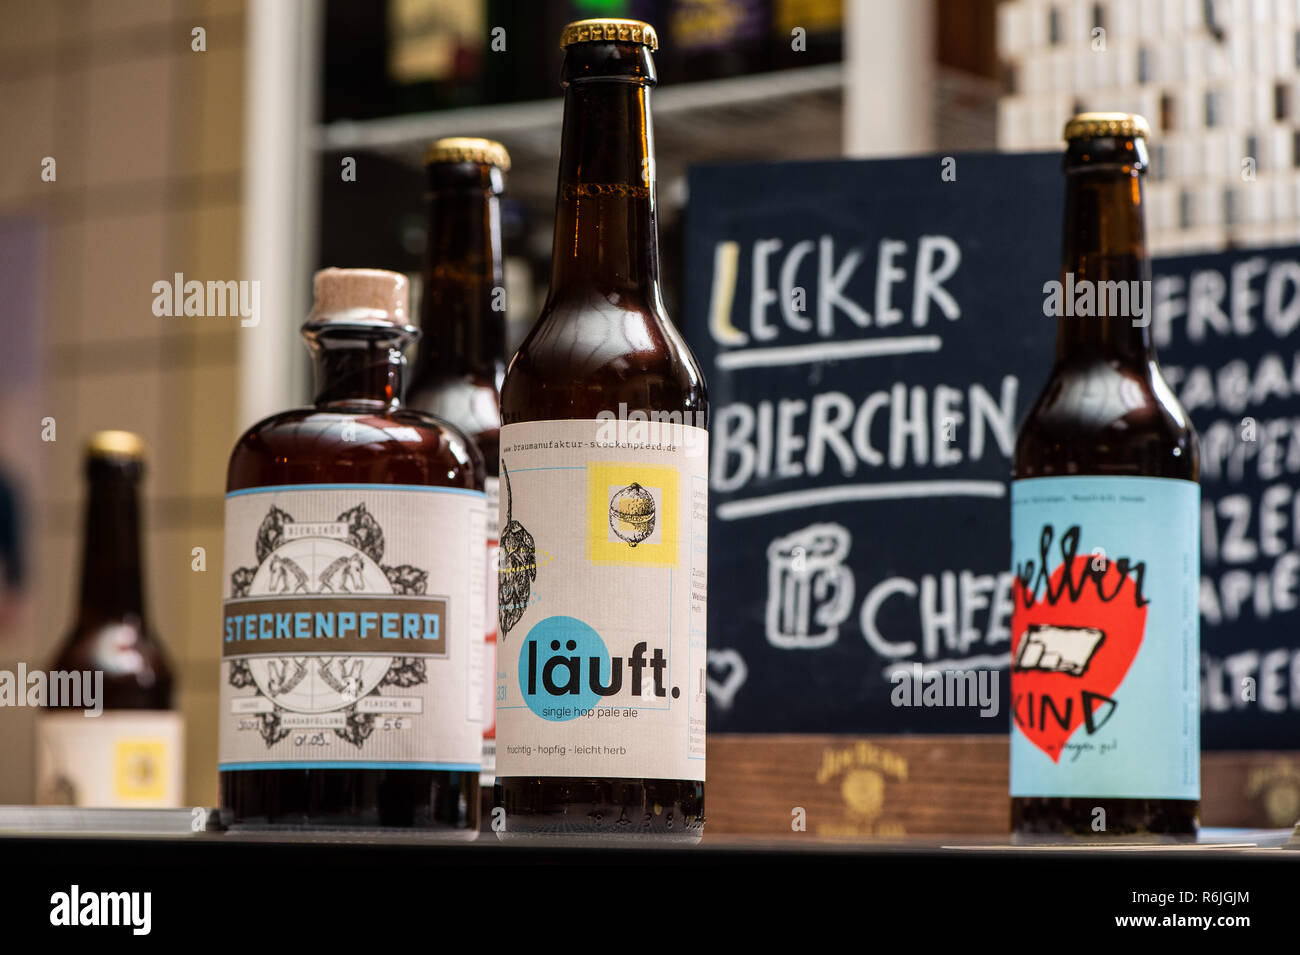 """Kassel, Germany. 22nd Nov, 2018. """"Delicious beer"""" is written on a board at the bar of the brewery Steckenpferd behind various craft beer bottles. (to dpa """"Successful in the niche - Craft beer brewers assert themselves on the market"""" of 06.12.2018) Credit: Swen Pförtner/dpa/Alamy Live News Stock Photo"""